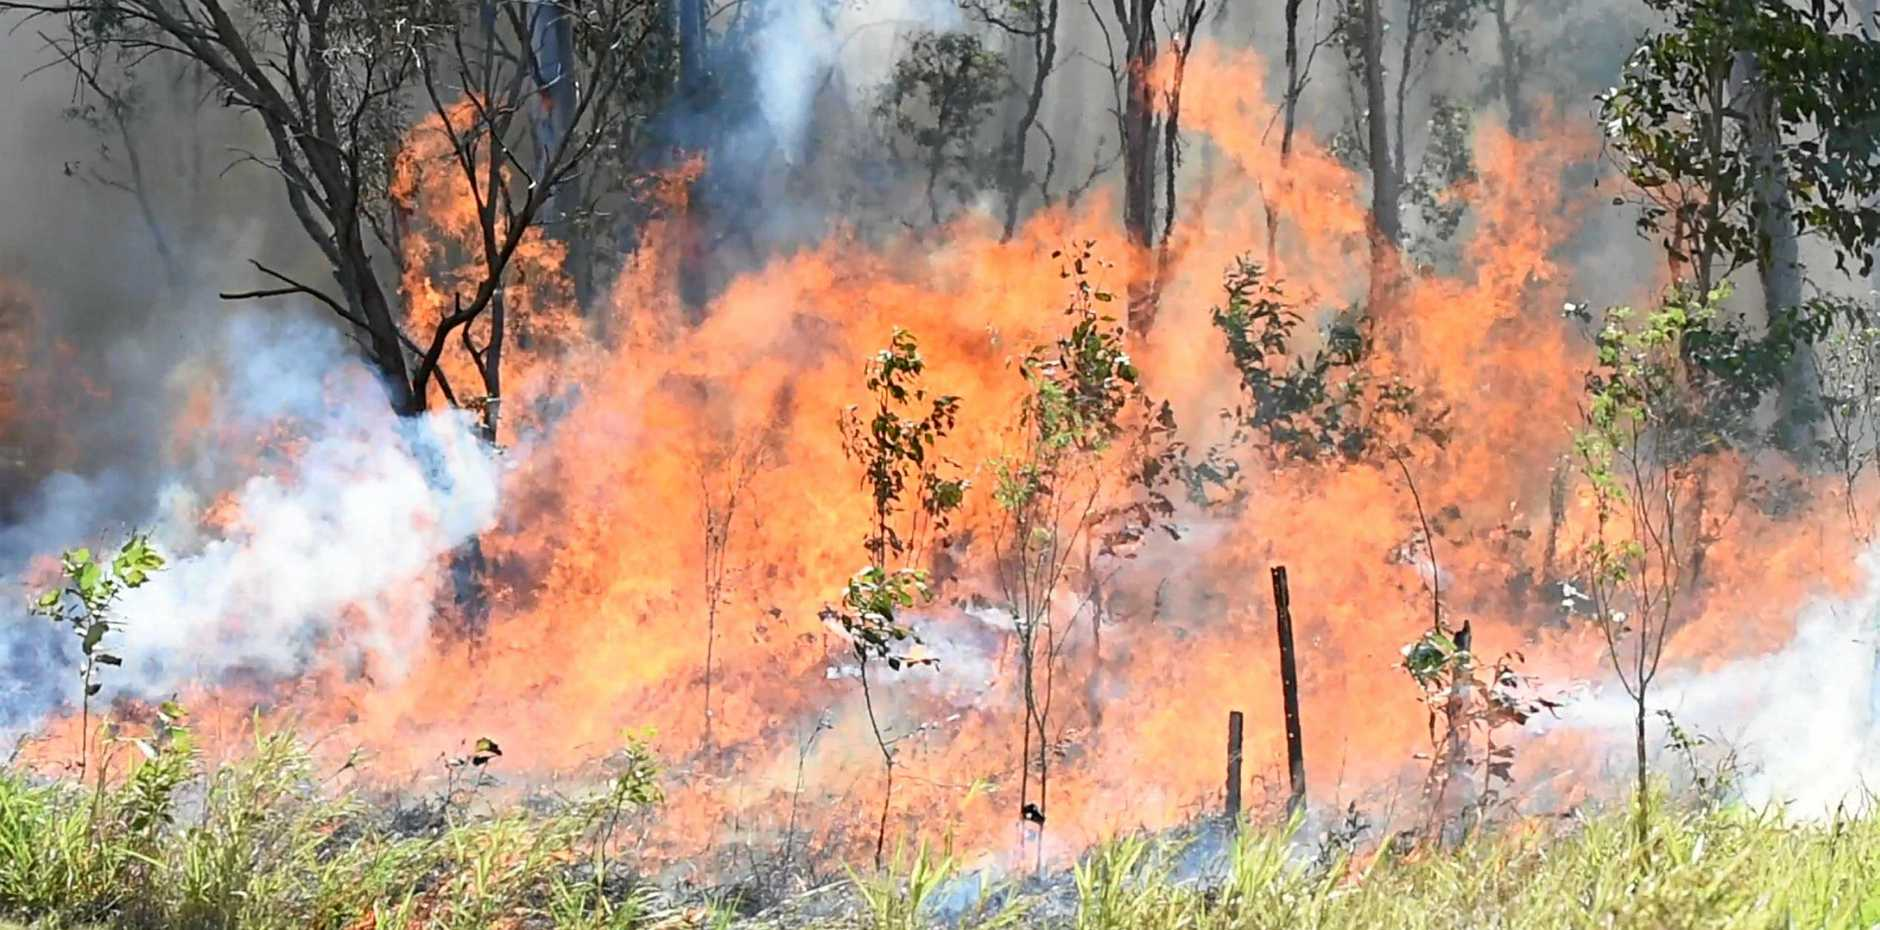 A Kingaroy man has been charged by police following an investigation into nine fires.